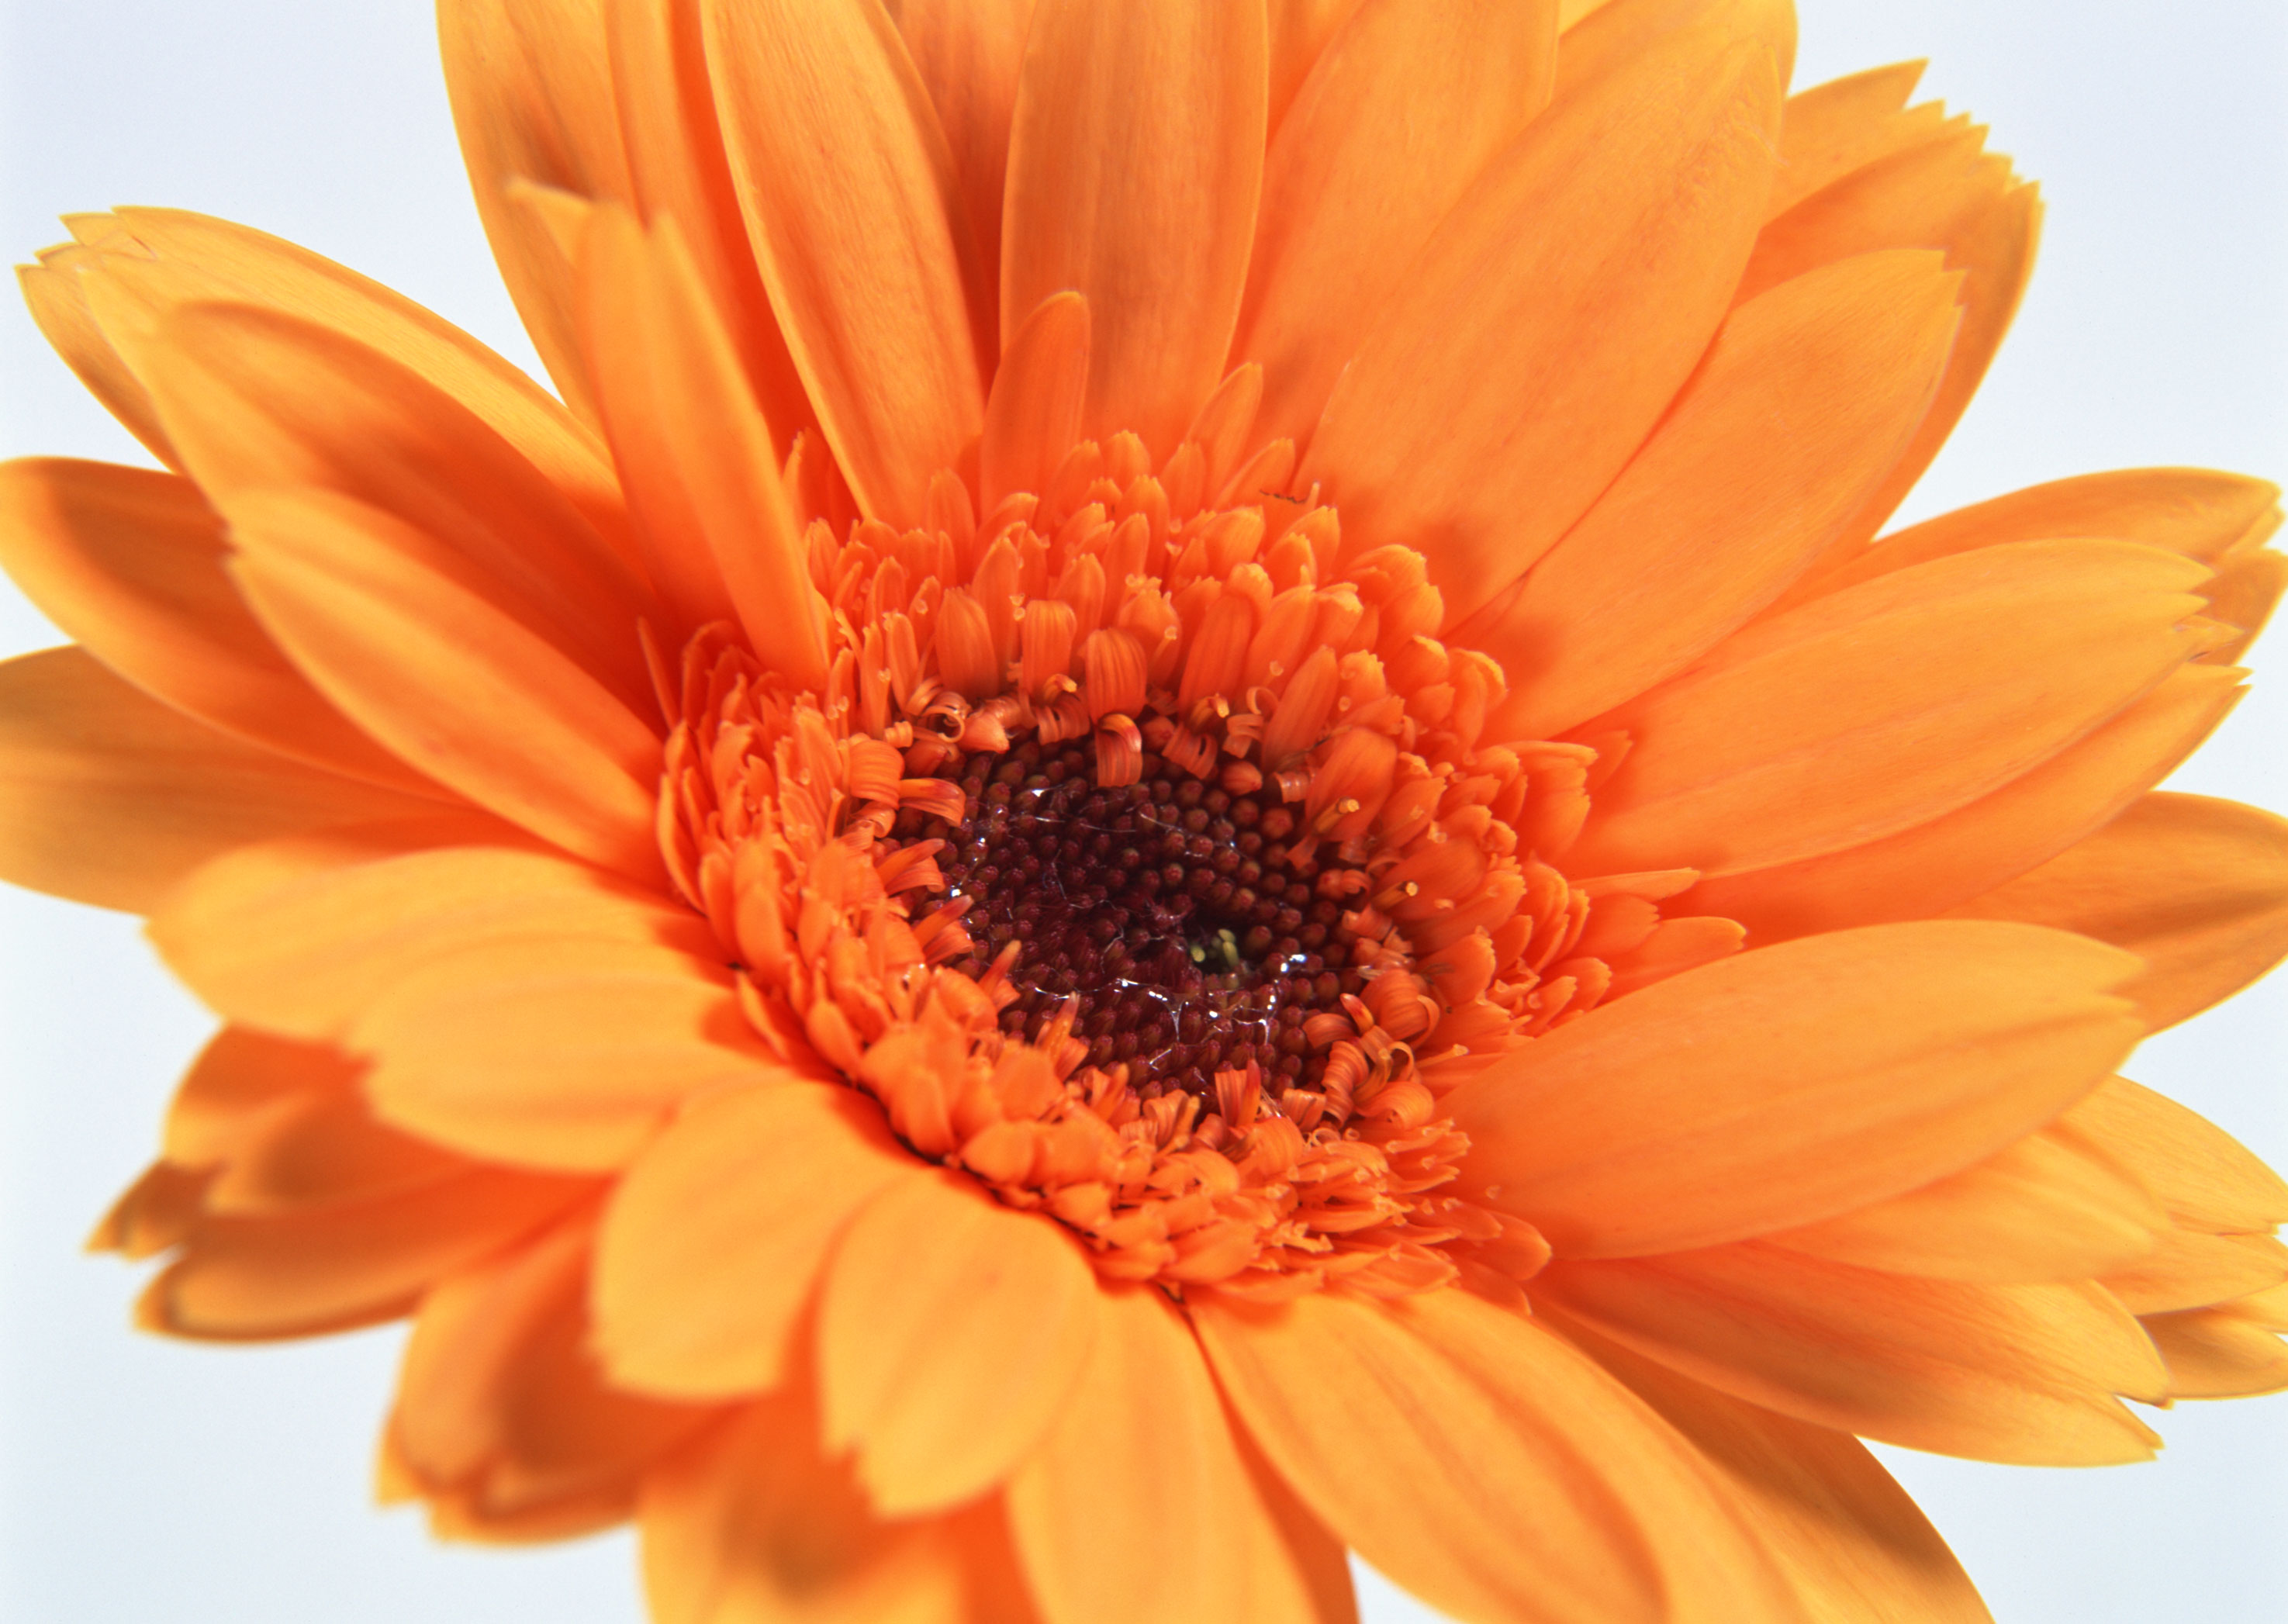 Free download high resolution image - free image free photo free stock image public domain picture -Farbe Orange gerber Blumen